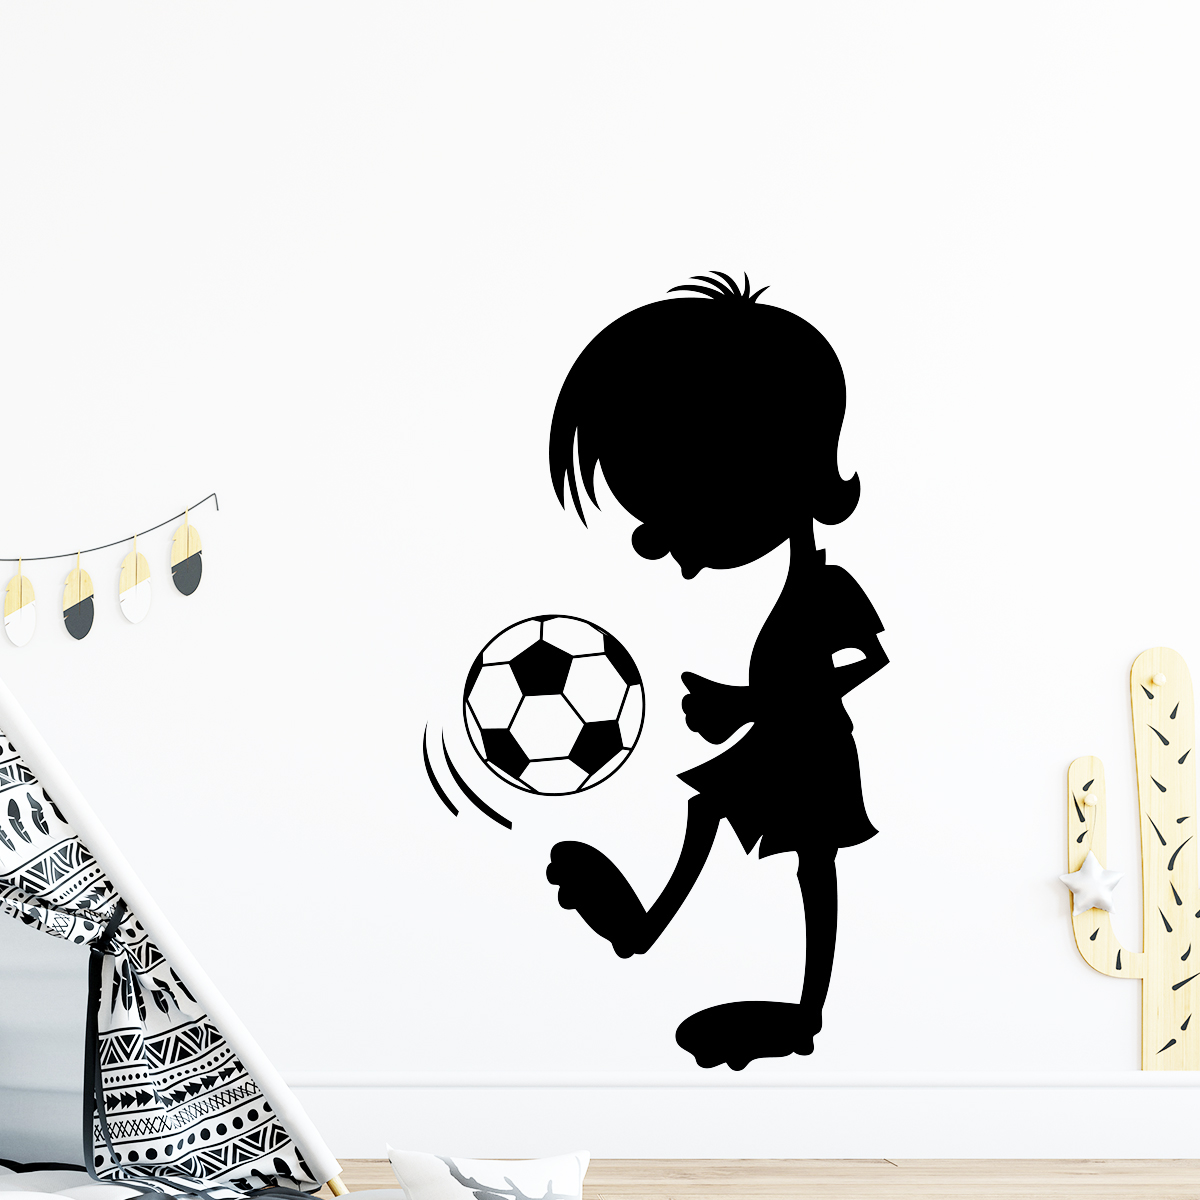 sticker petit gar on avec un ballon stickers sports et football football ambiance sticker. Black Bedroom Furniture Sets. Home Design Ideas